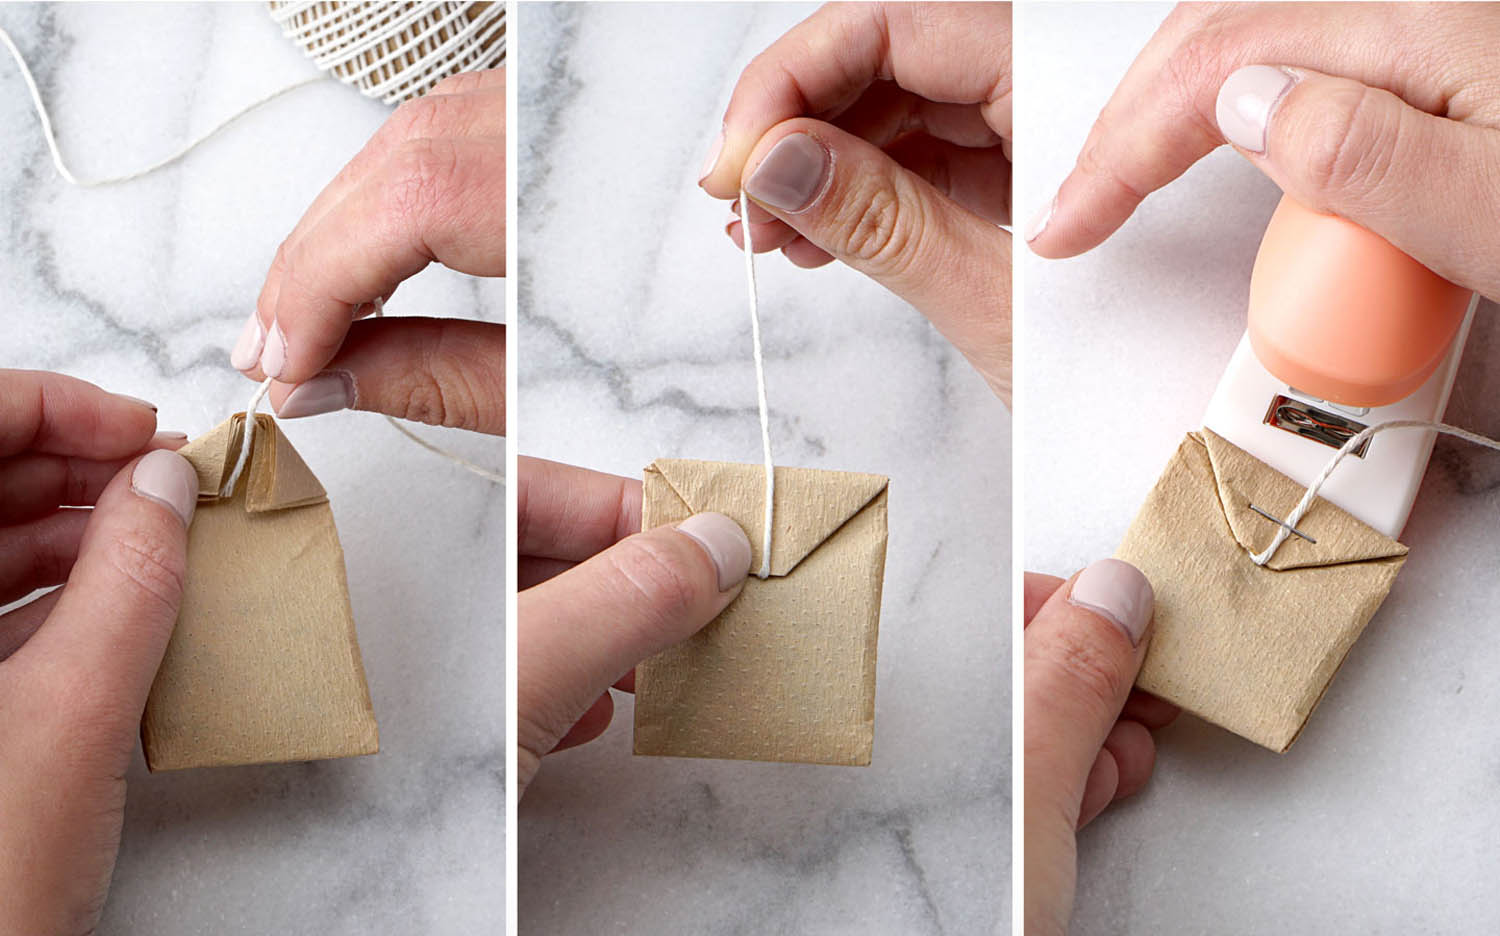 Folding the string into the top folded tea bag paper filter prior to stapling the string that will hold the printable tea bag tag